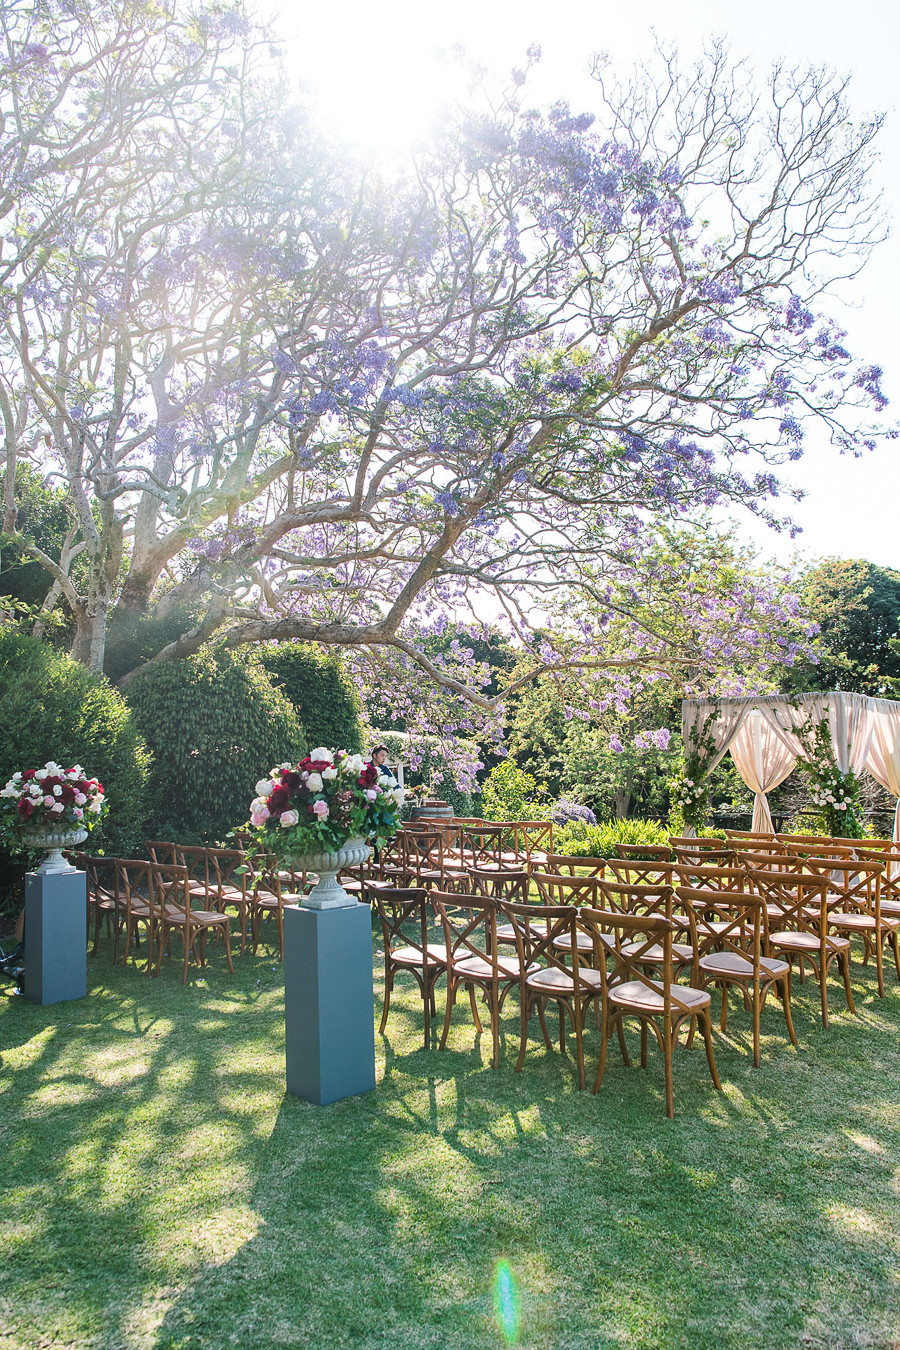 Large ceremony pedestal designs in rich tones